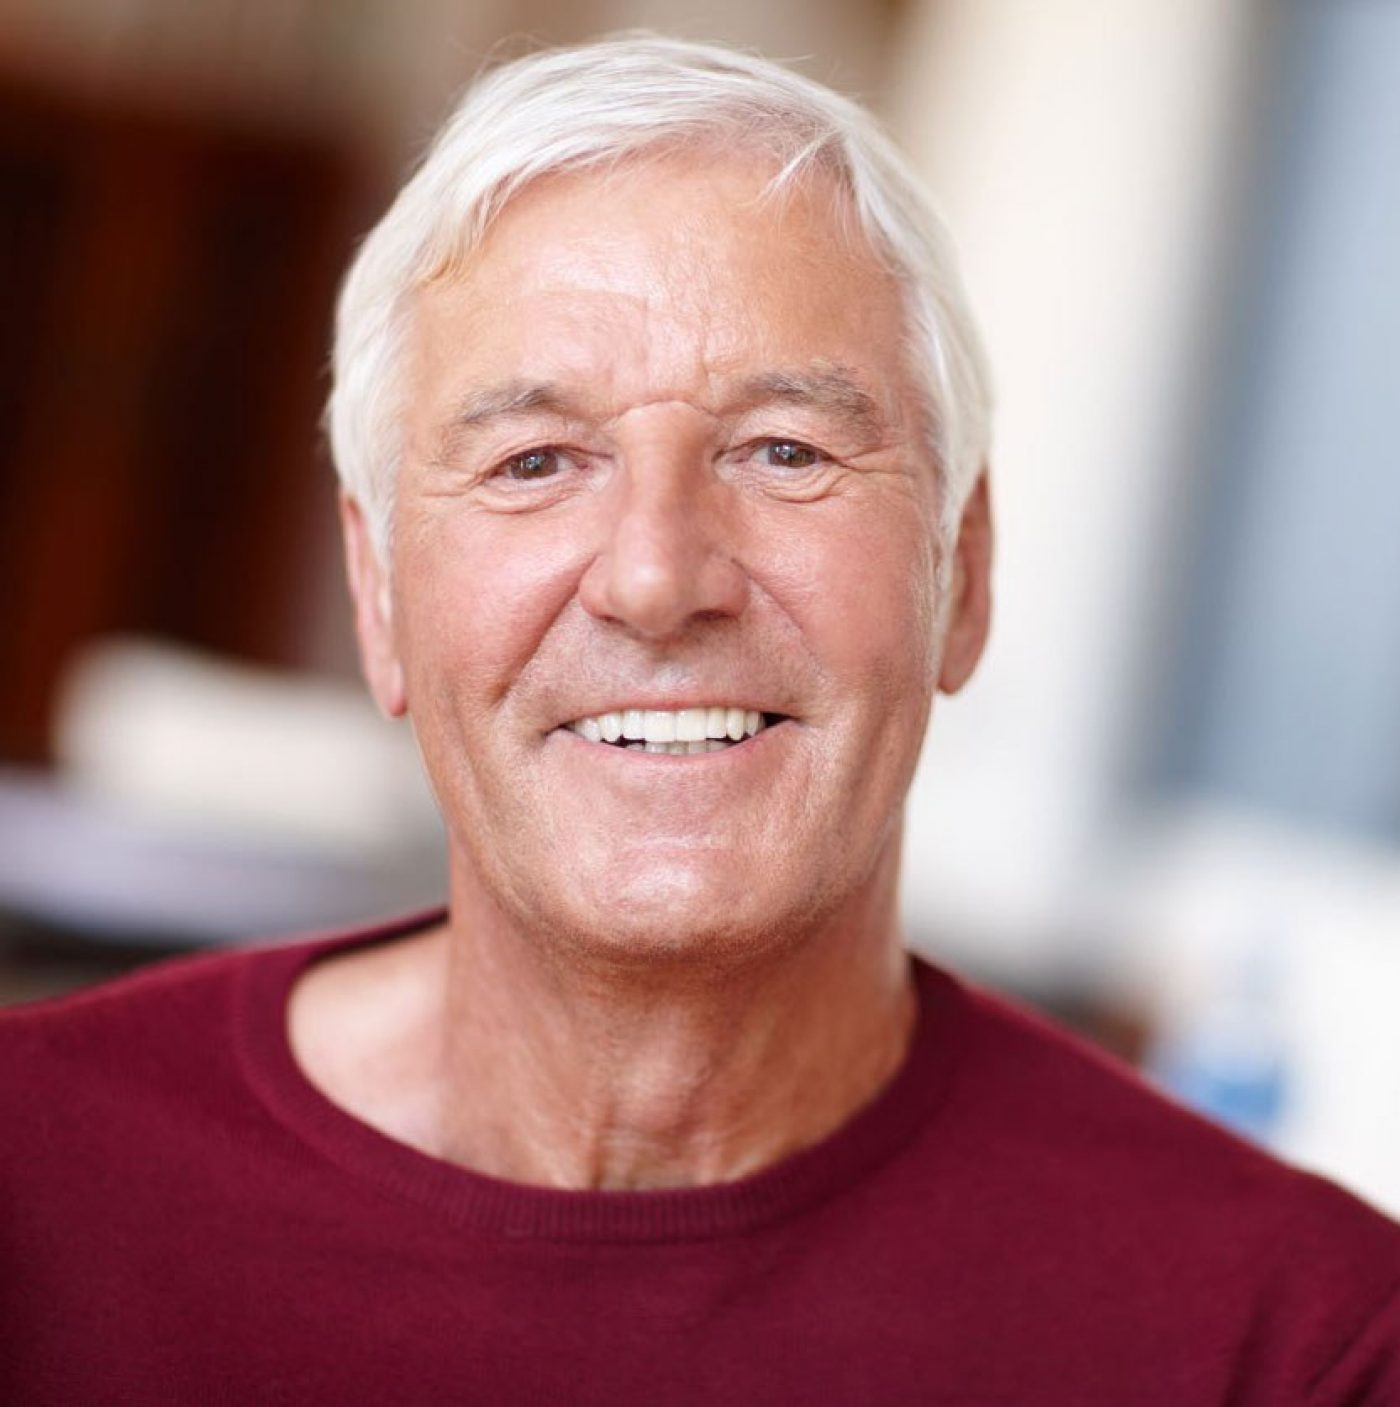 Dental Implants Implantsecureddentures